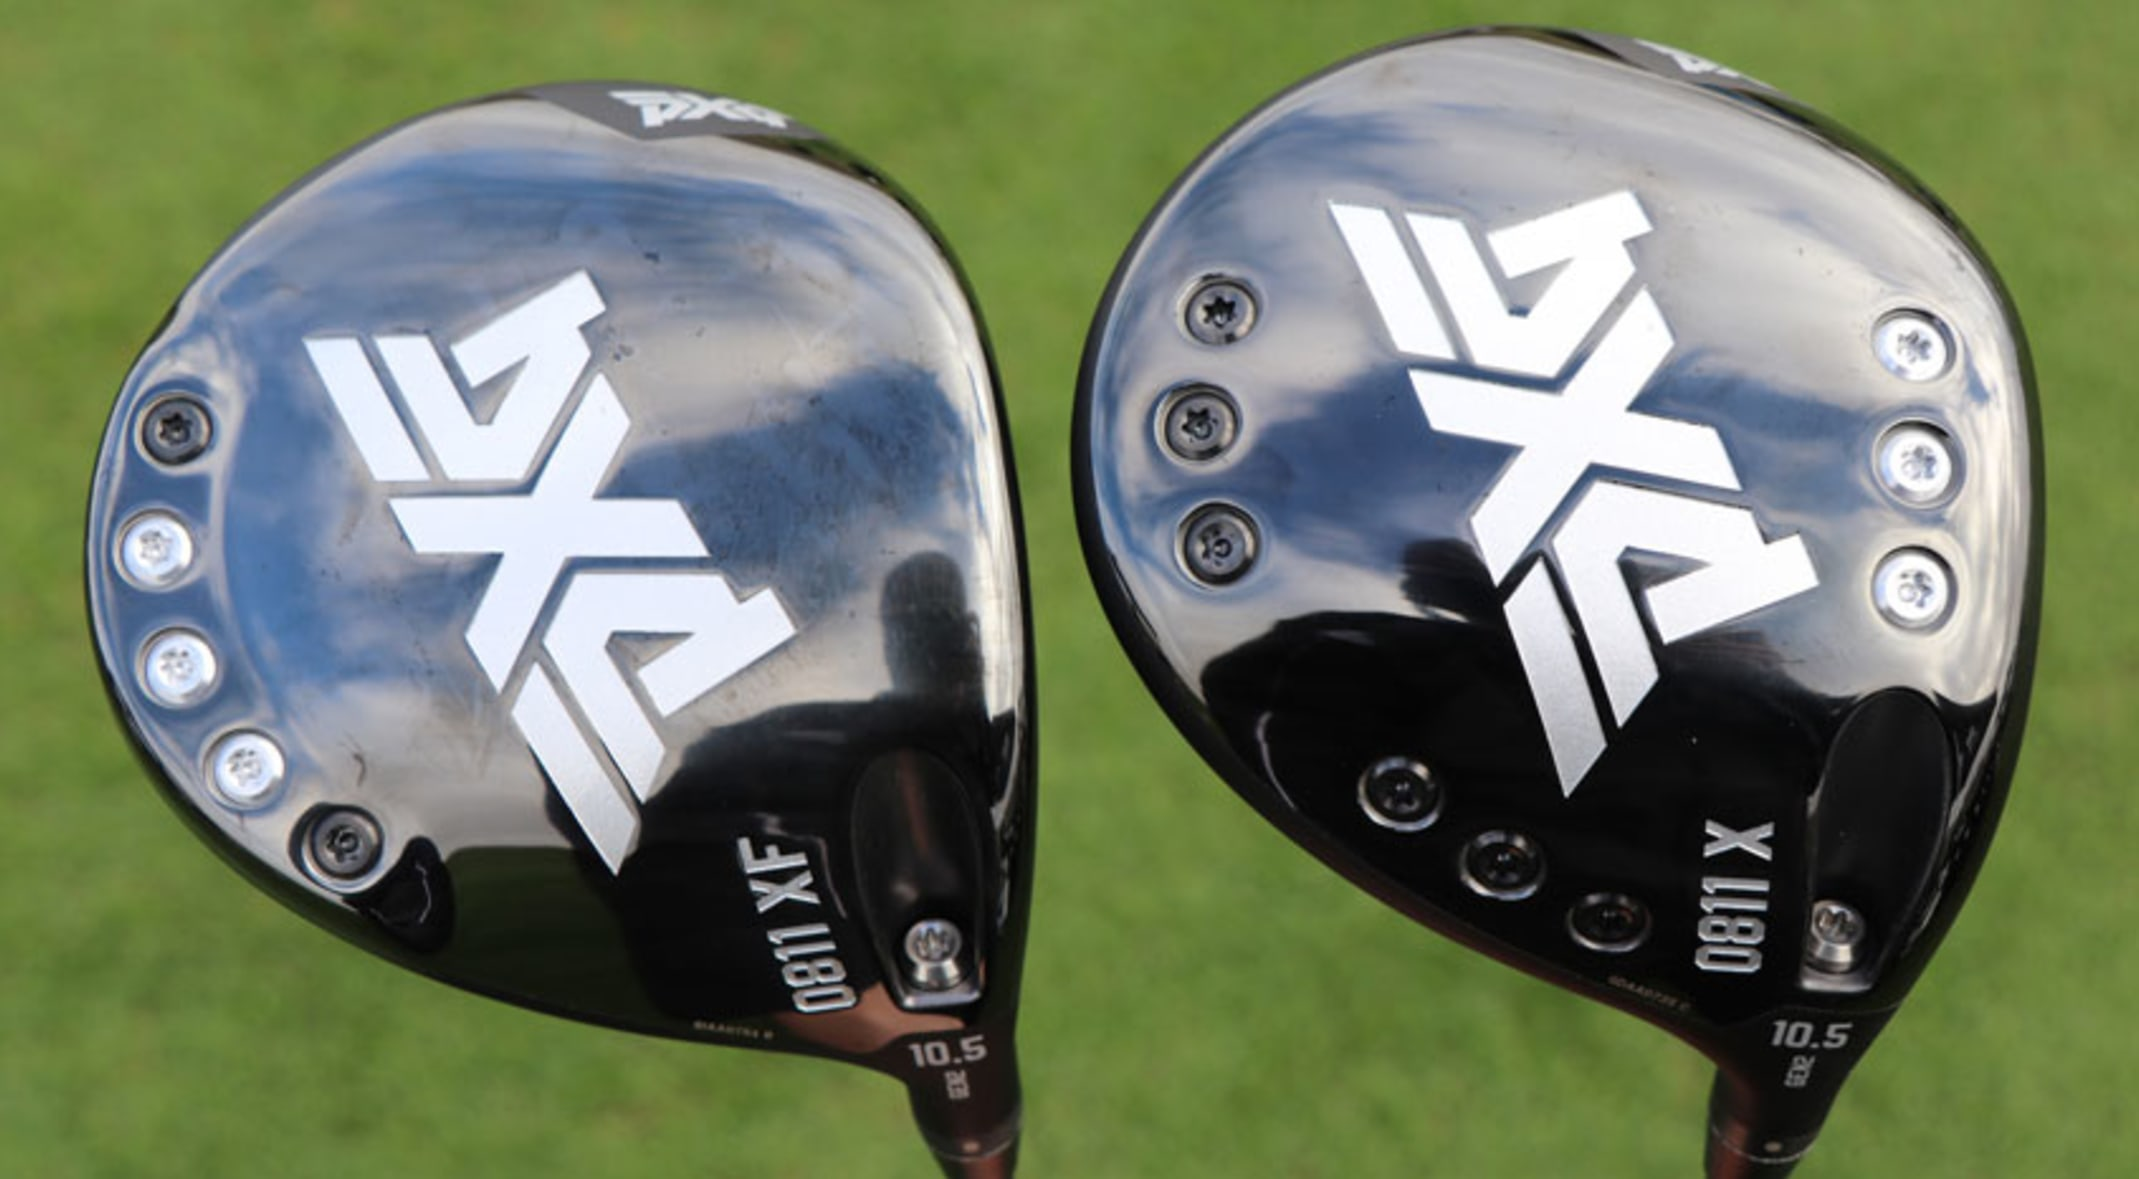 PXG introduces Gen2 driver, fairway woods and hybrids